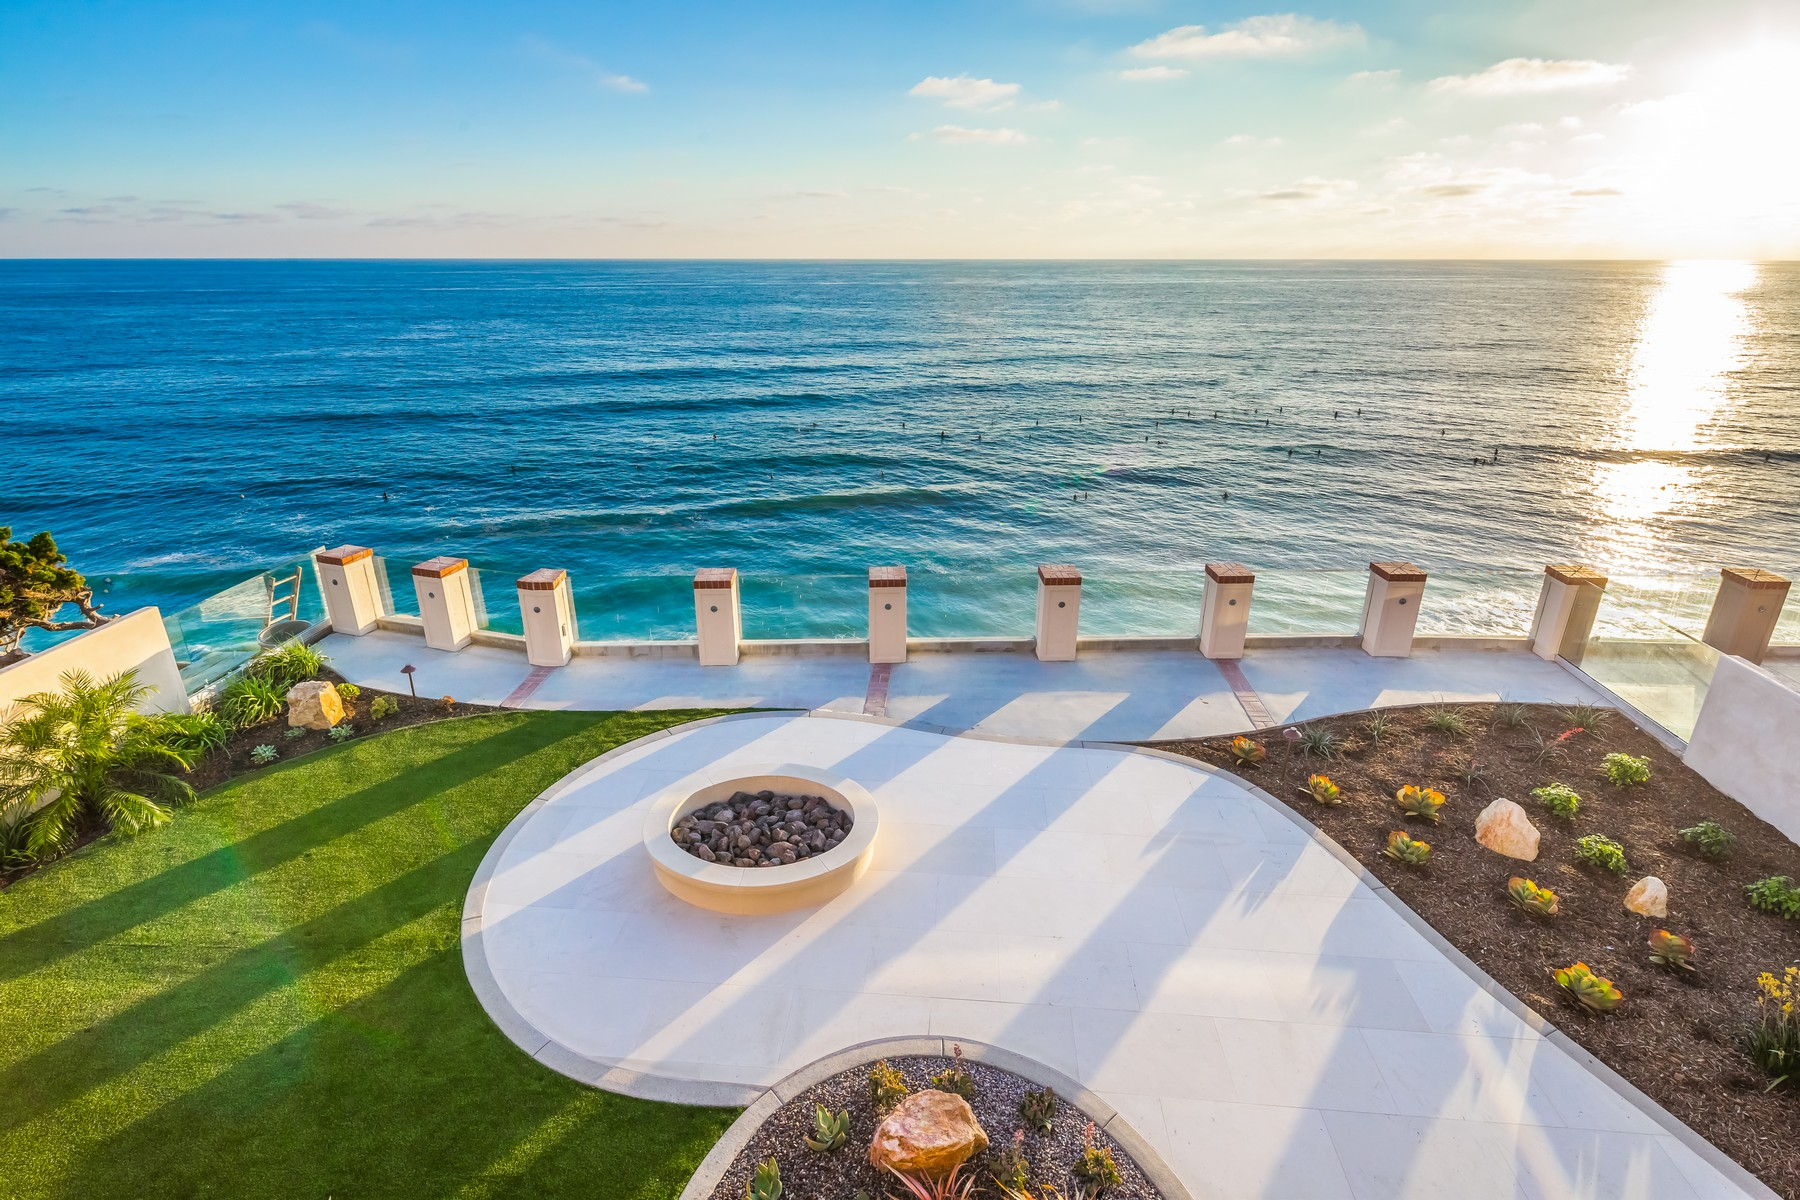 Additional photo for property listing at 824 Neptune Avenue  Encinitas, California 92024 United States